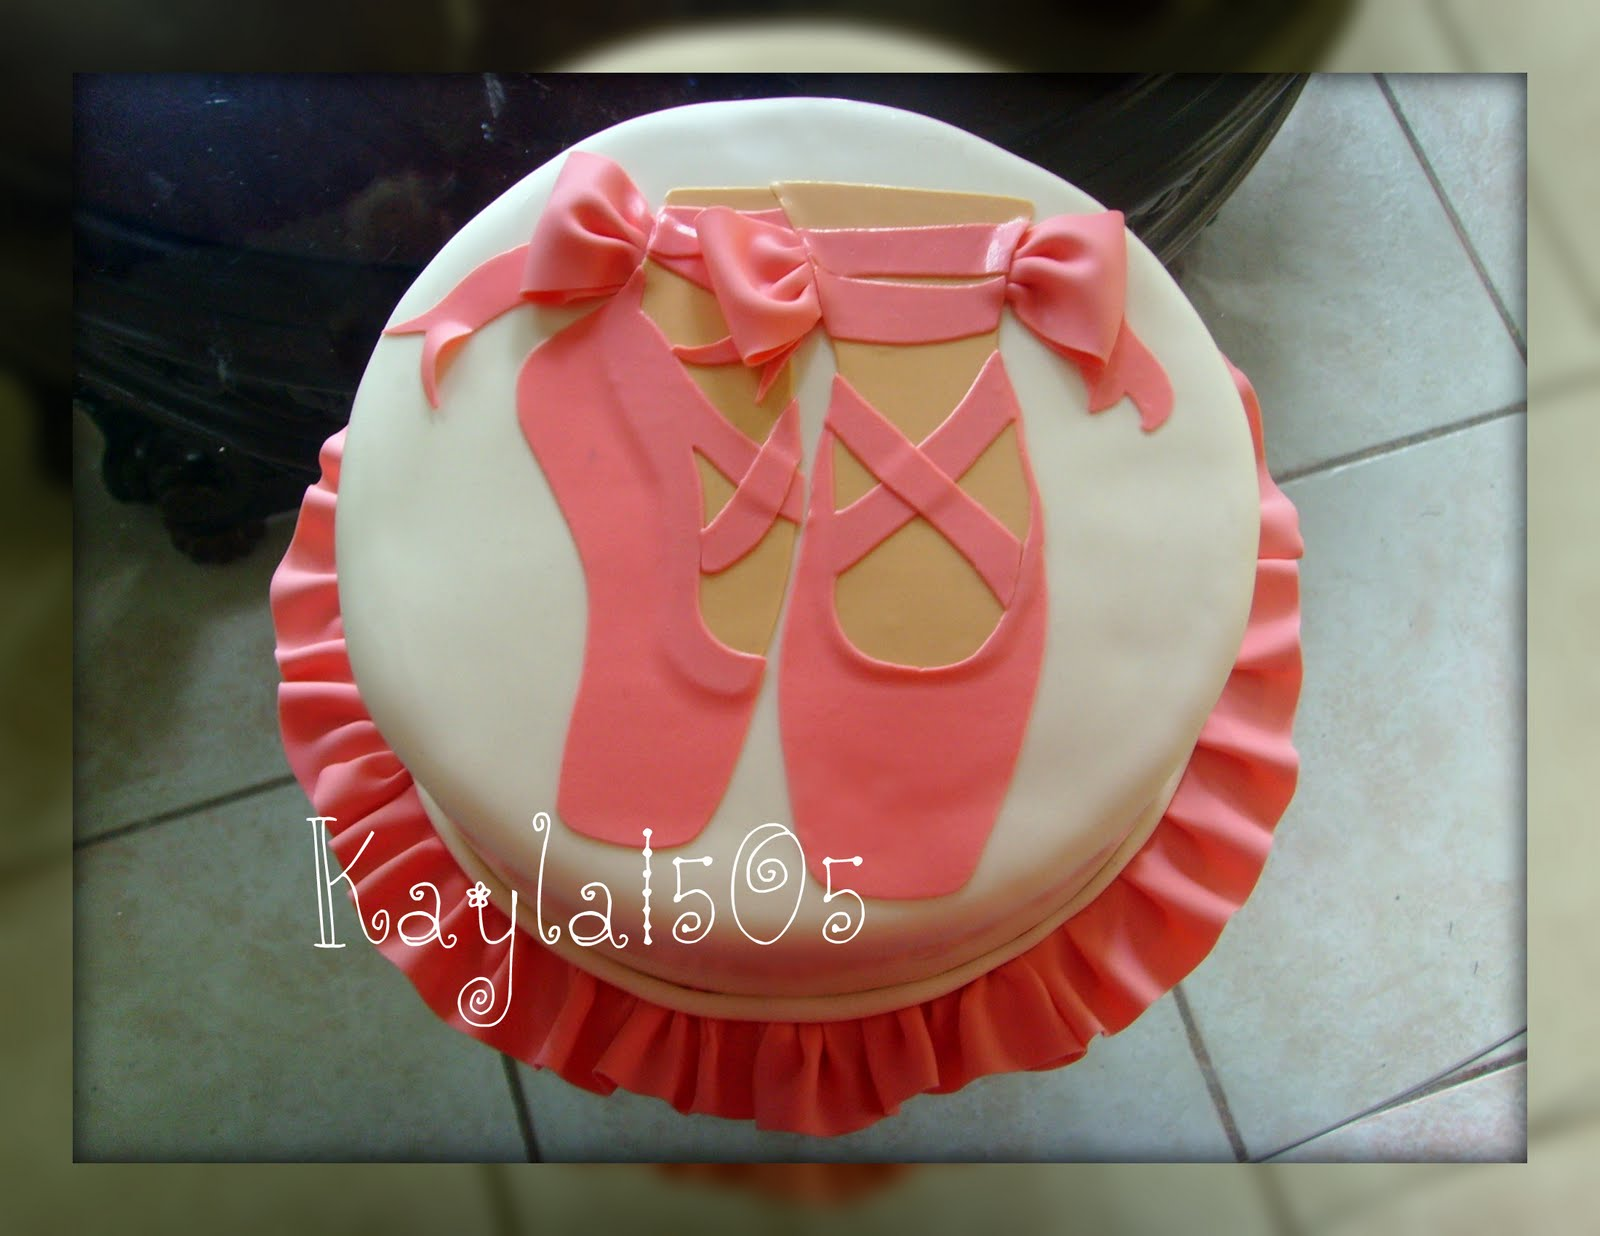 Cake Decorations Ballet Shoes : Ballerina Birthday Cakes on Pinterest Ballerina Cakes ...